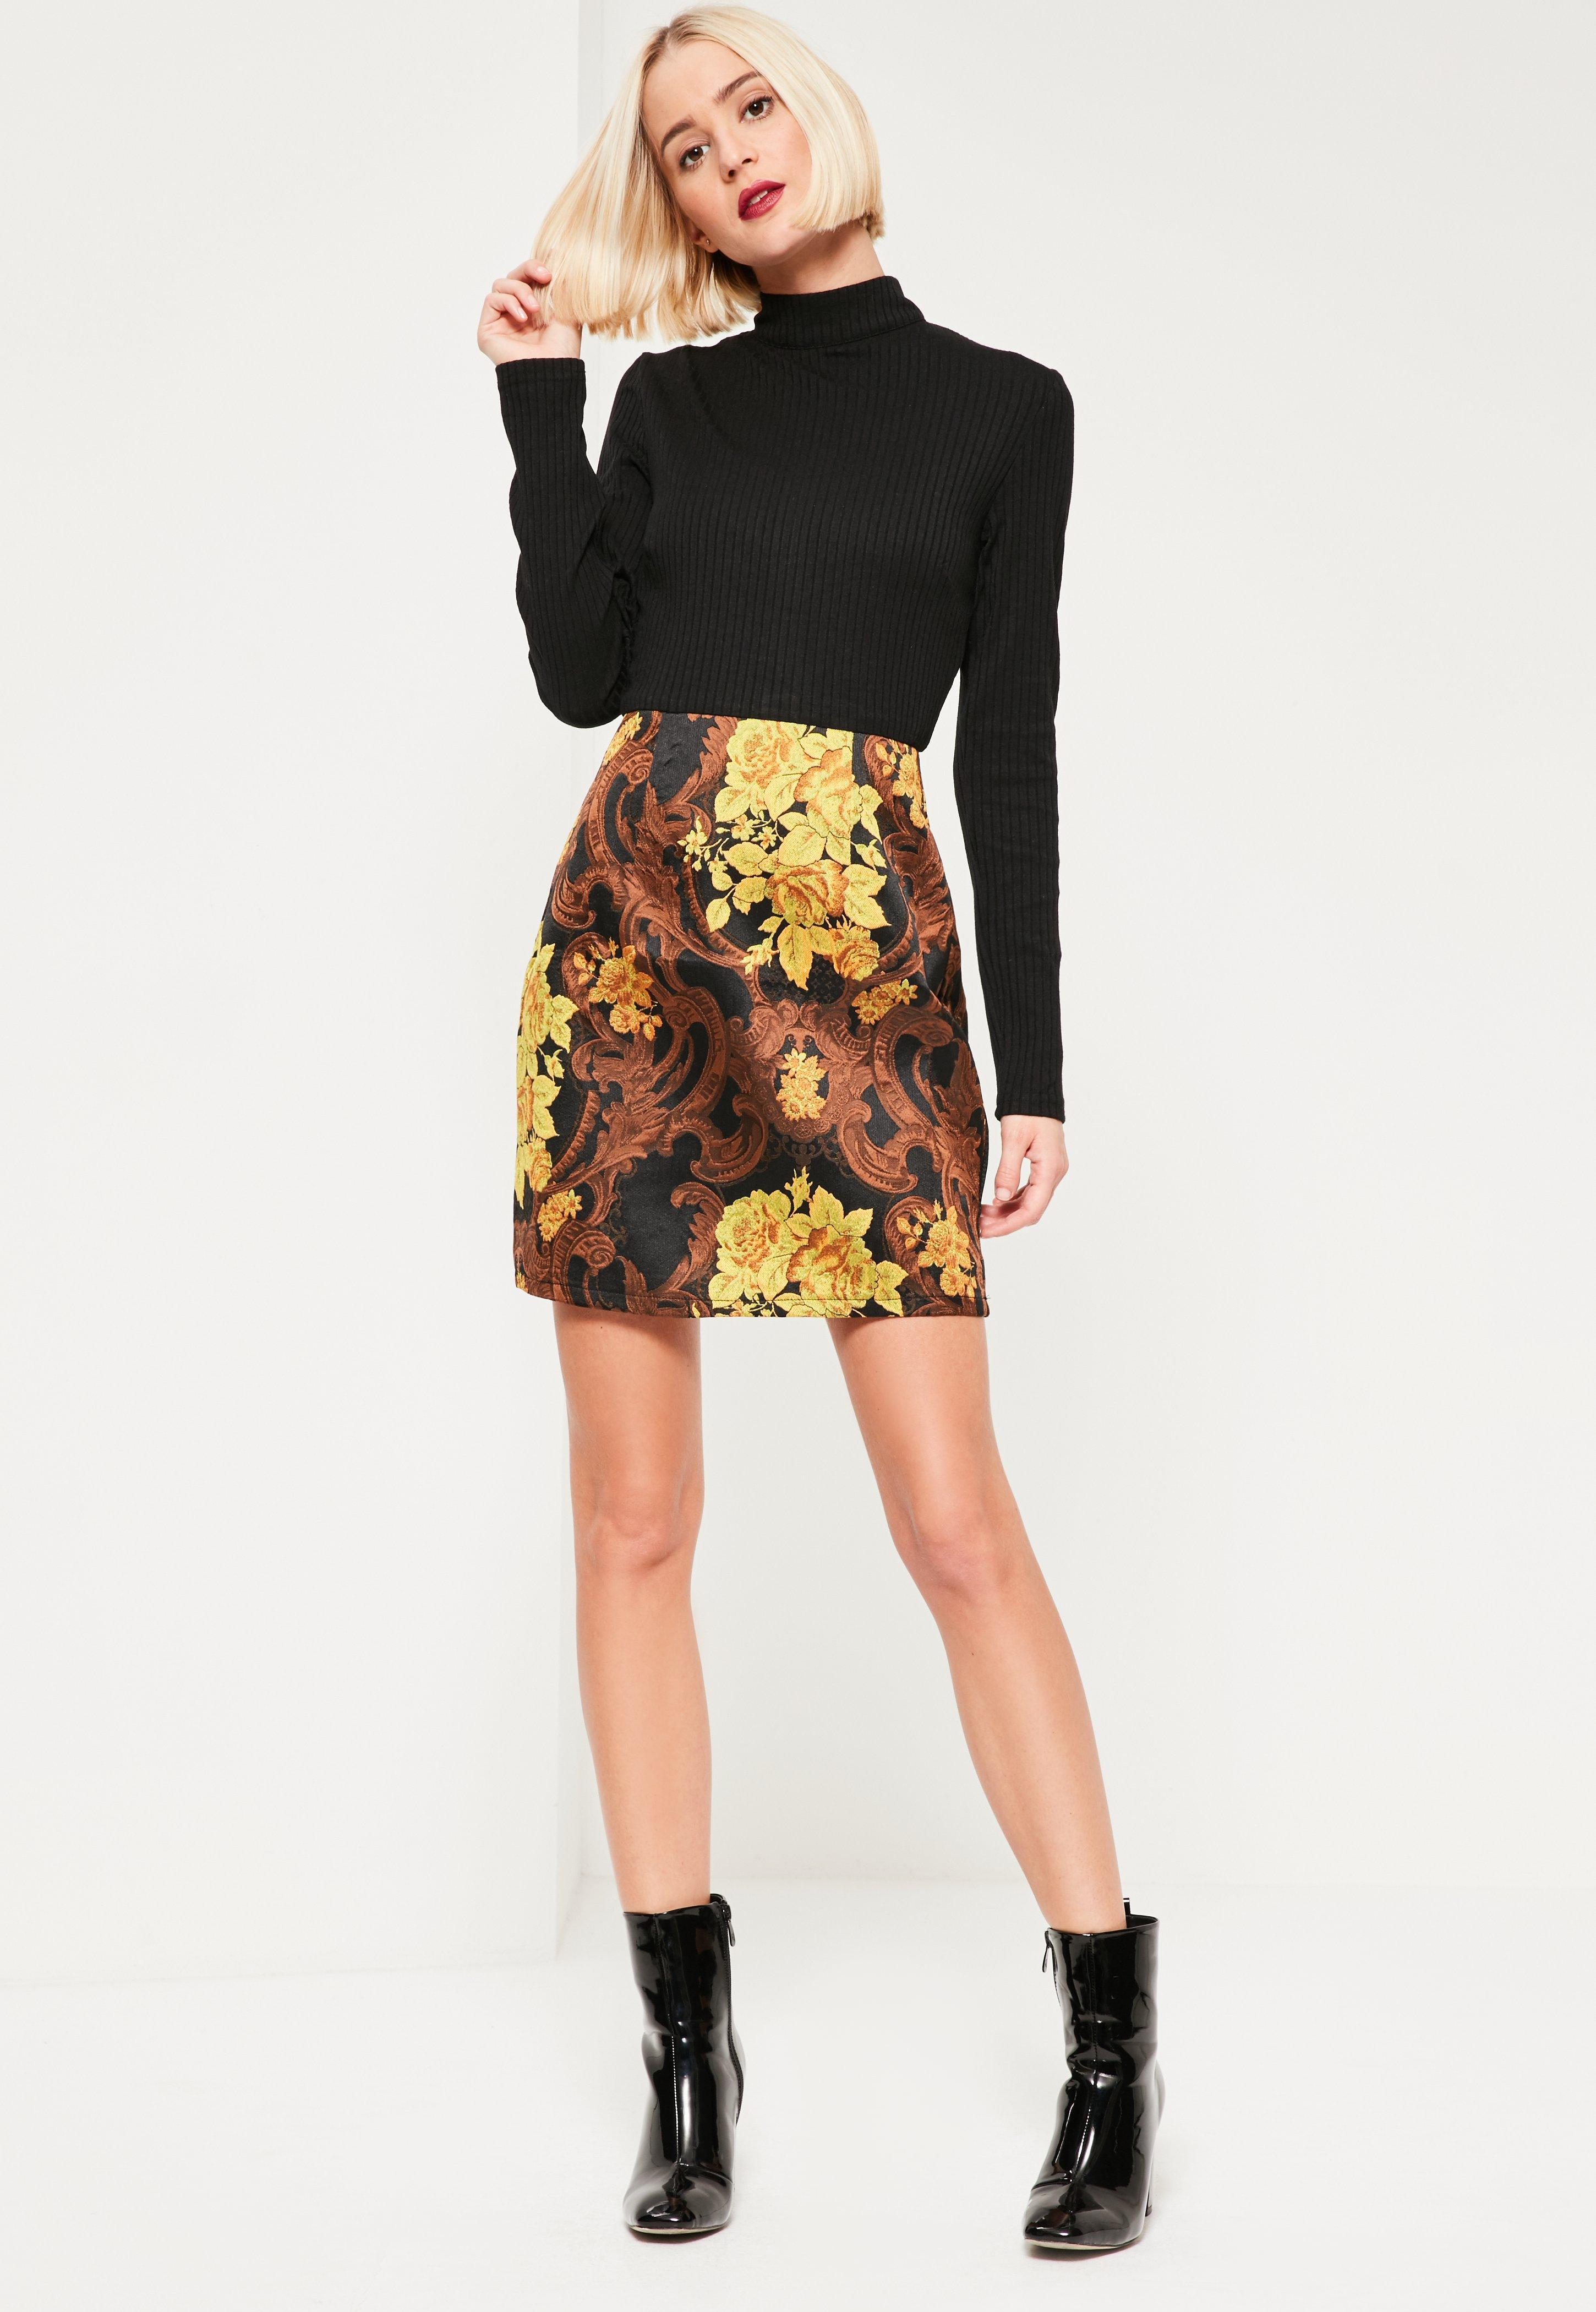 1f02f9d48ca972 Missguided Black Jacquard Skirt Ribbed 2 In 1 Dress in Black - Lyst